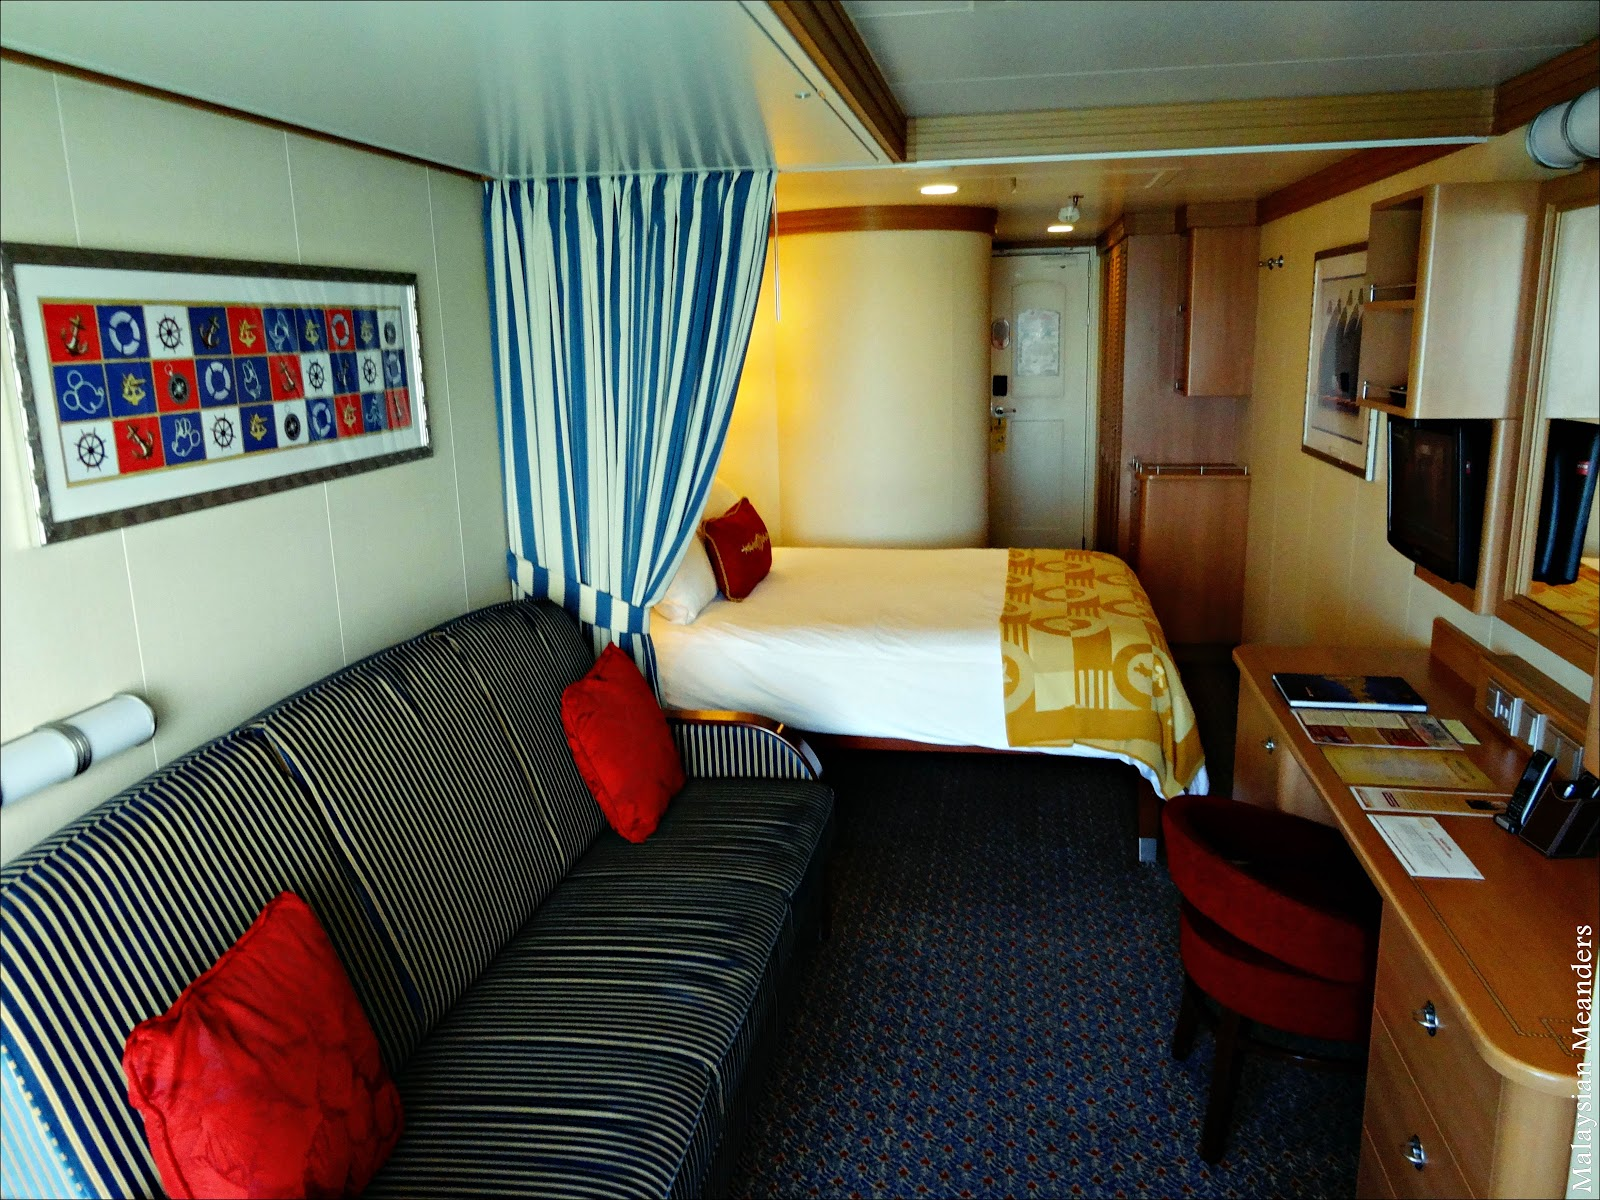 disney dream sofa bed how to clean fabric set malaysian meanders cruising on the inside stateroom deluxe family viewed from porthole towards door